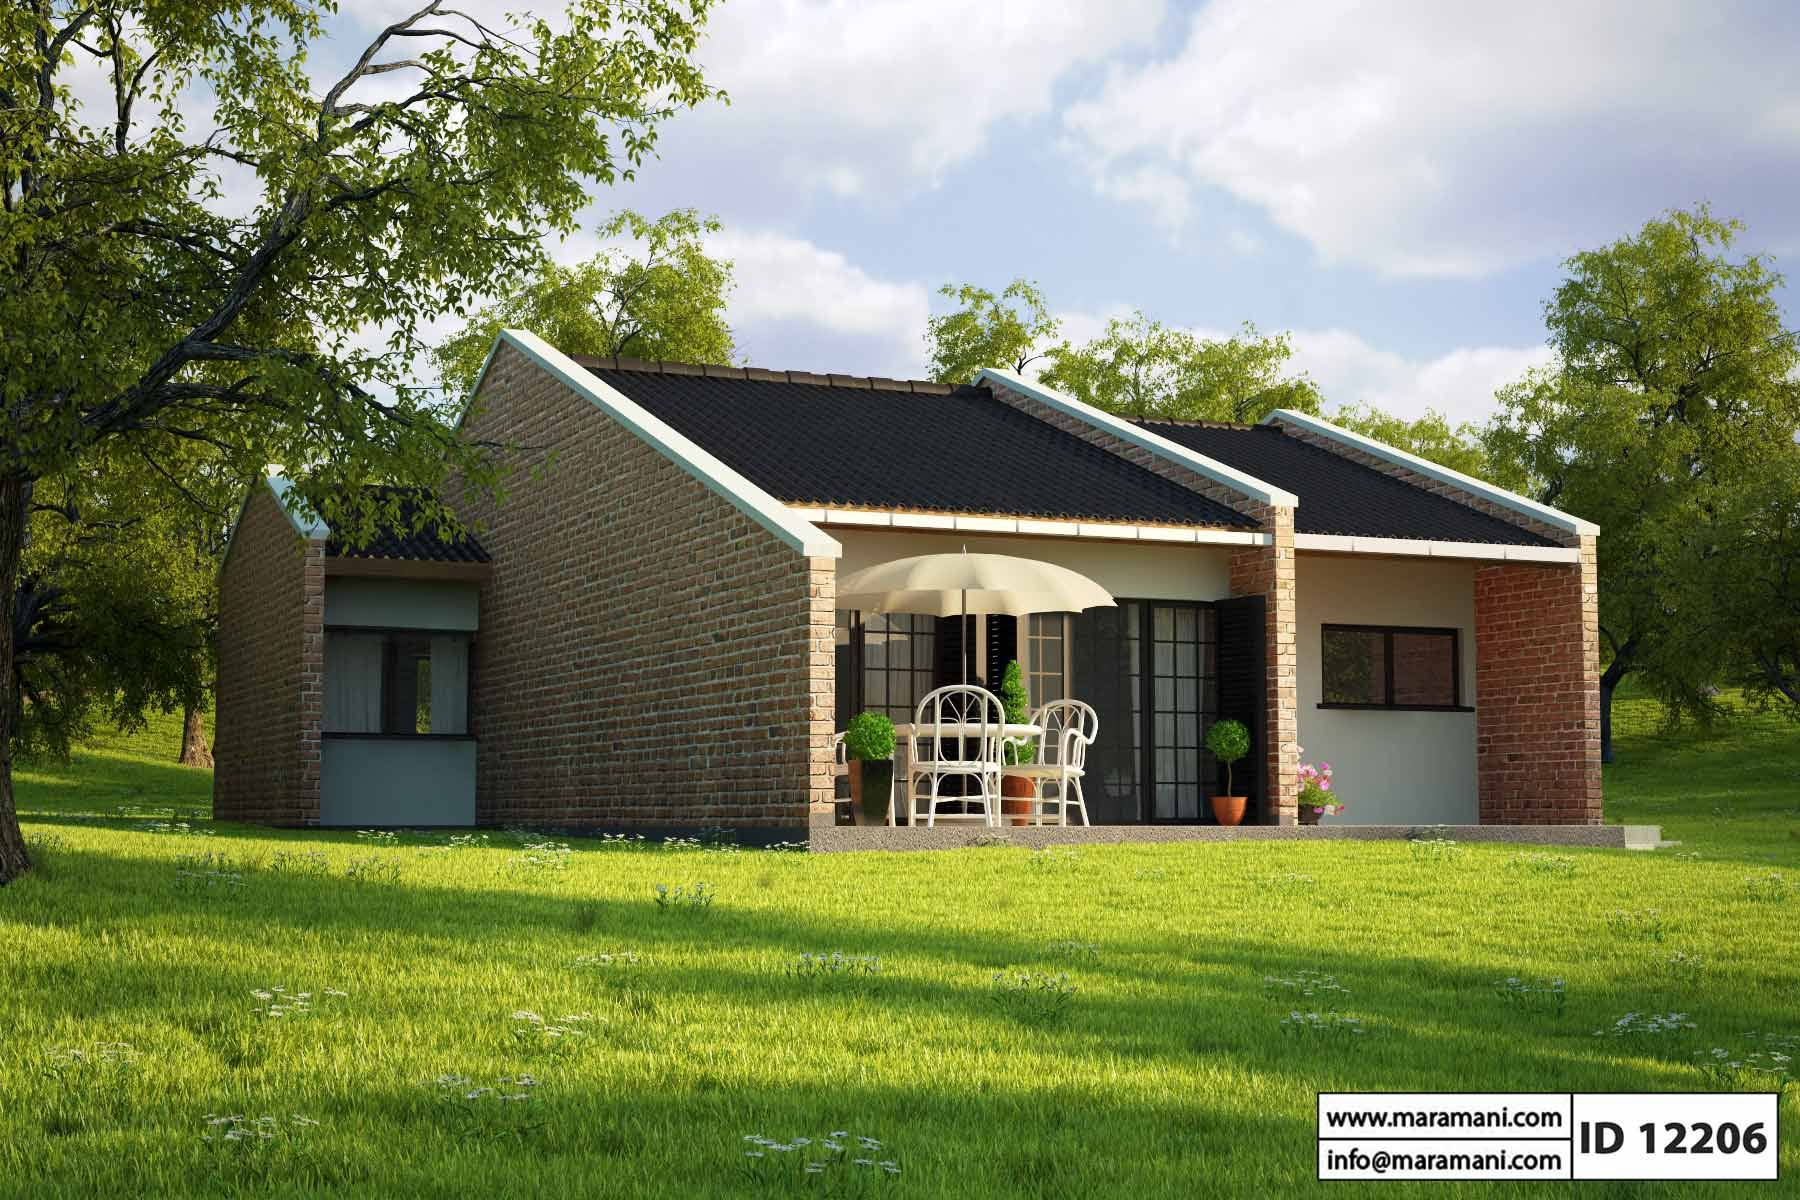 2 Bedroom House Plan Id 12206 House Designs By Maramani